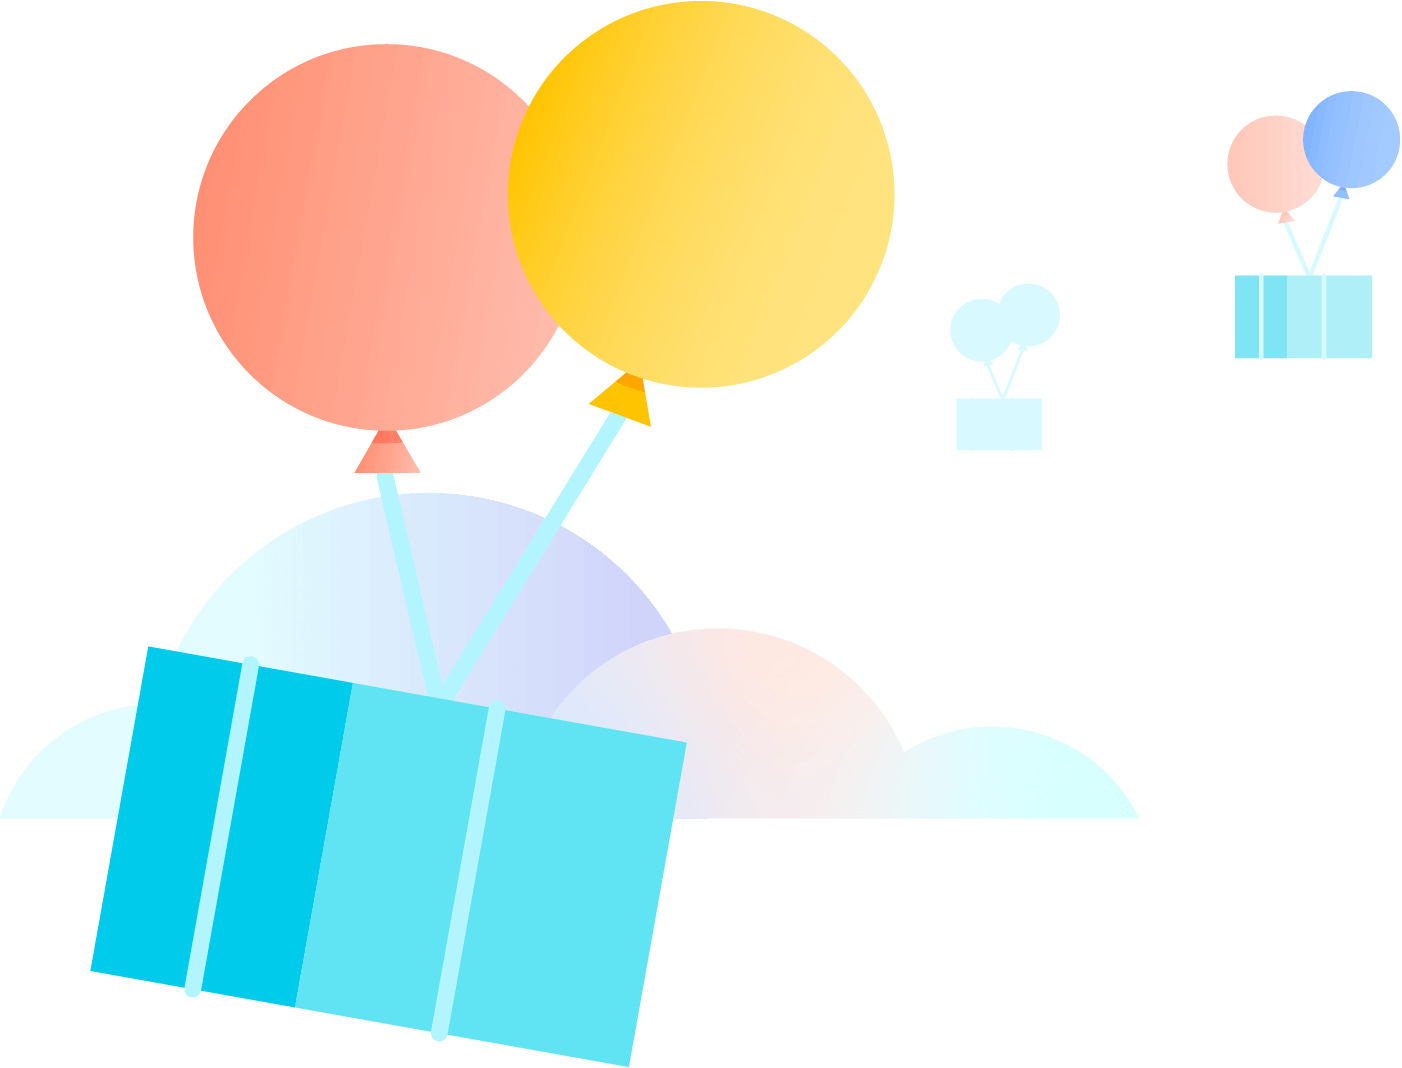 Containers with balloons